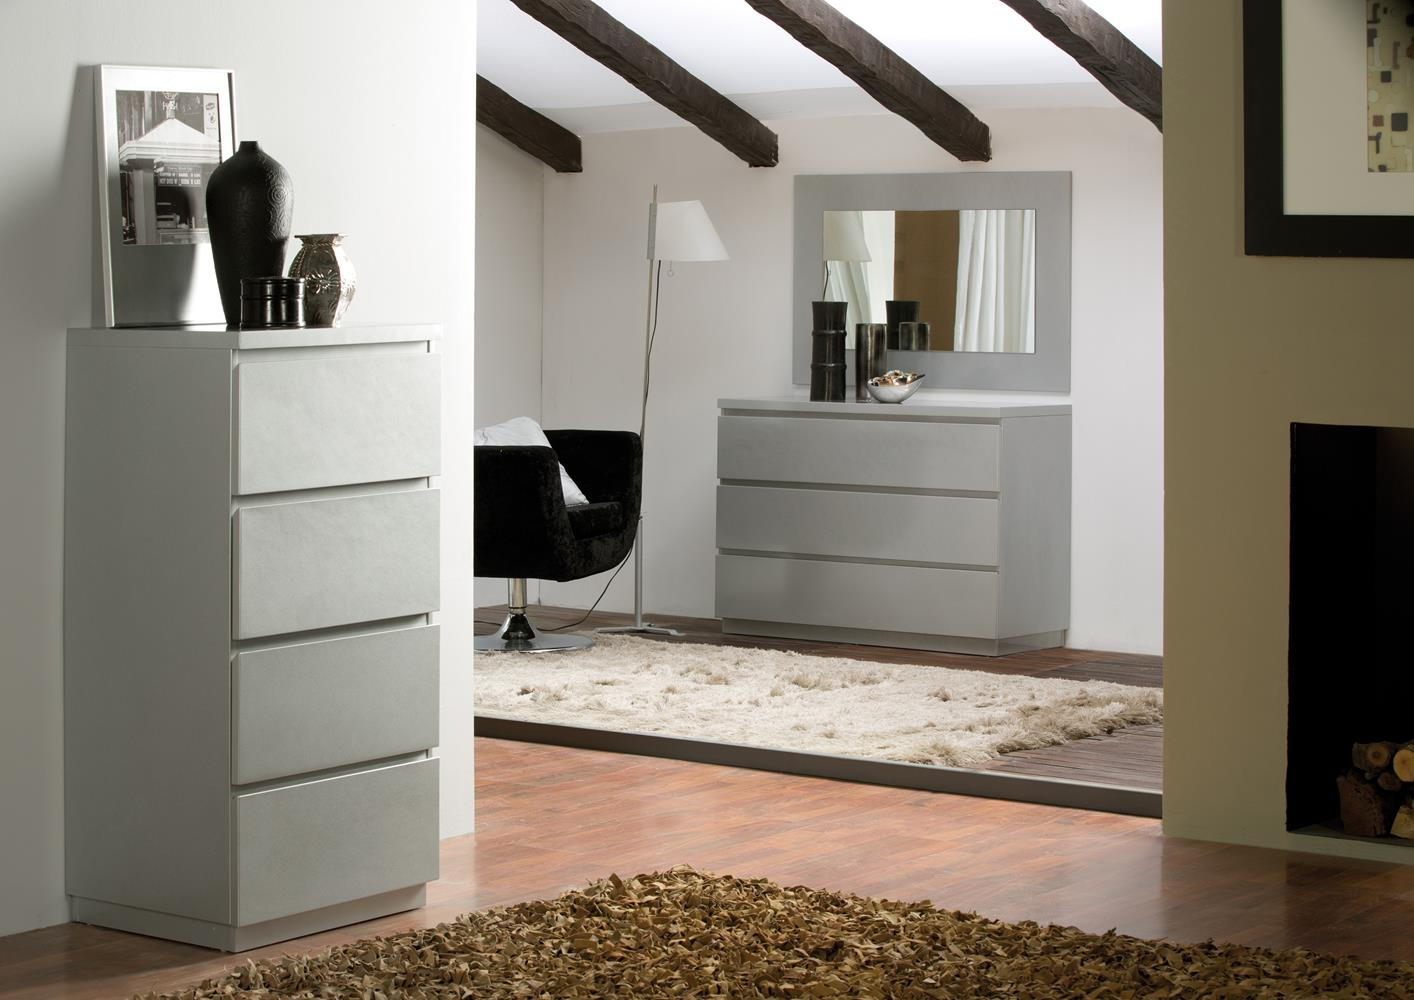 acheter votre meuble contemporain 6 tiroirs laqu blanc chez simeuble. Black Bedroom Furniture Sets. Home Design Ideas